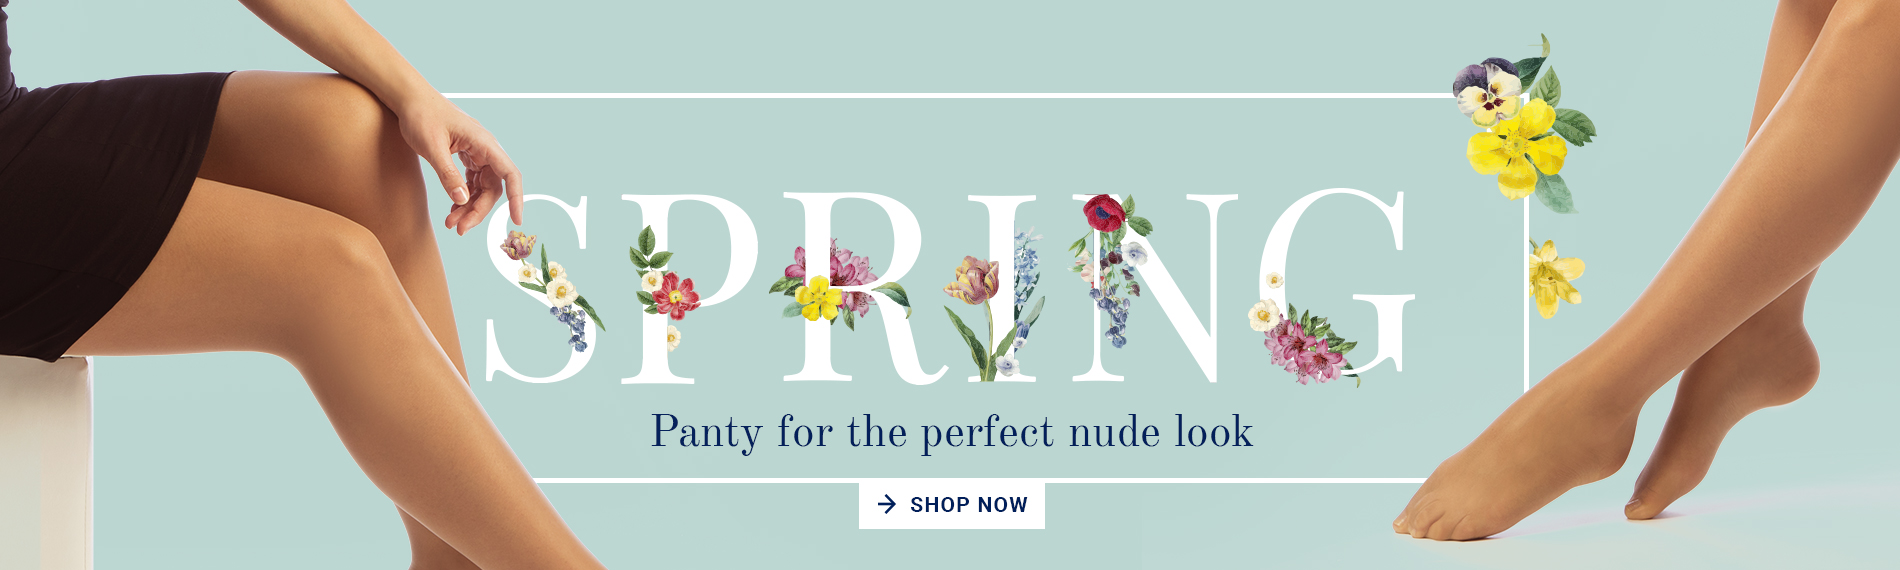 SPRING - Panty for the perfect nude look